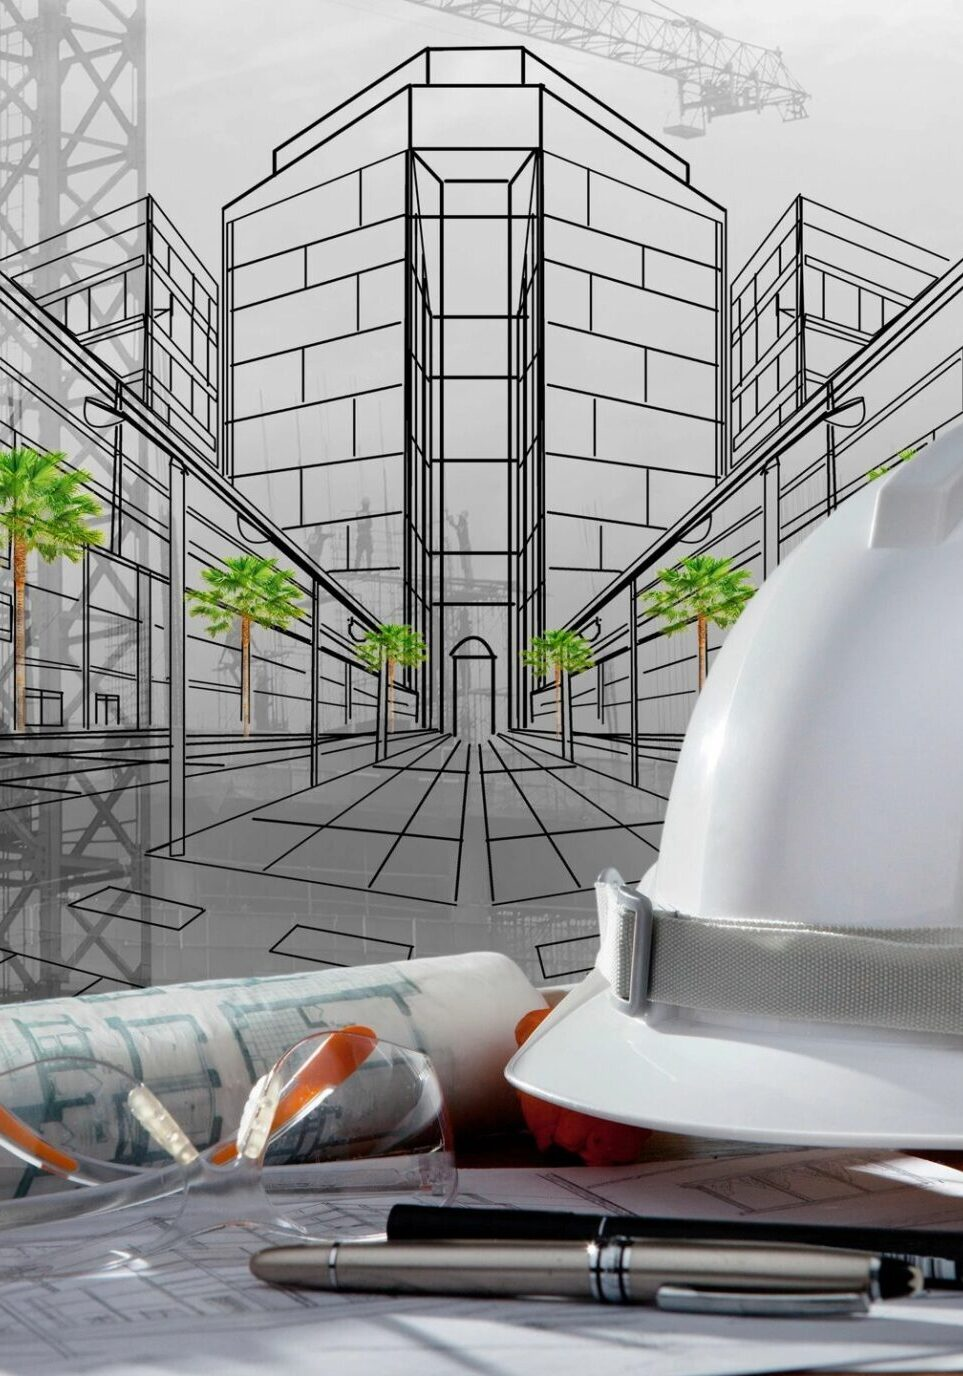 United Professional Engineering - Structural Engineering Services Palm Beach and Broward County